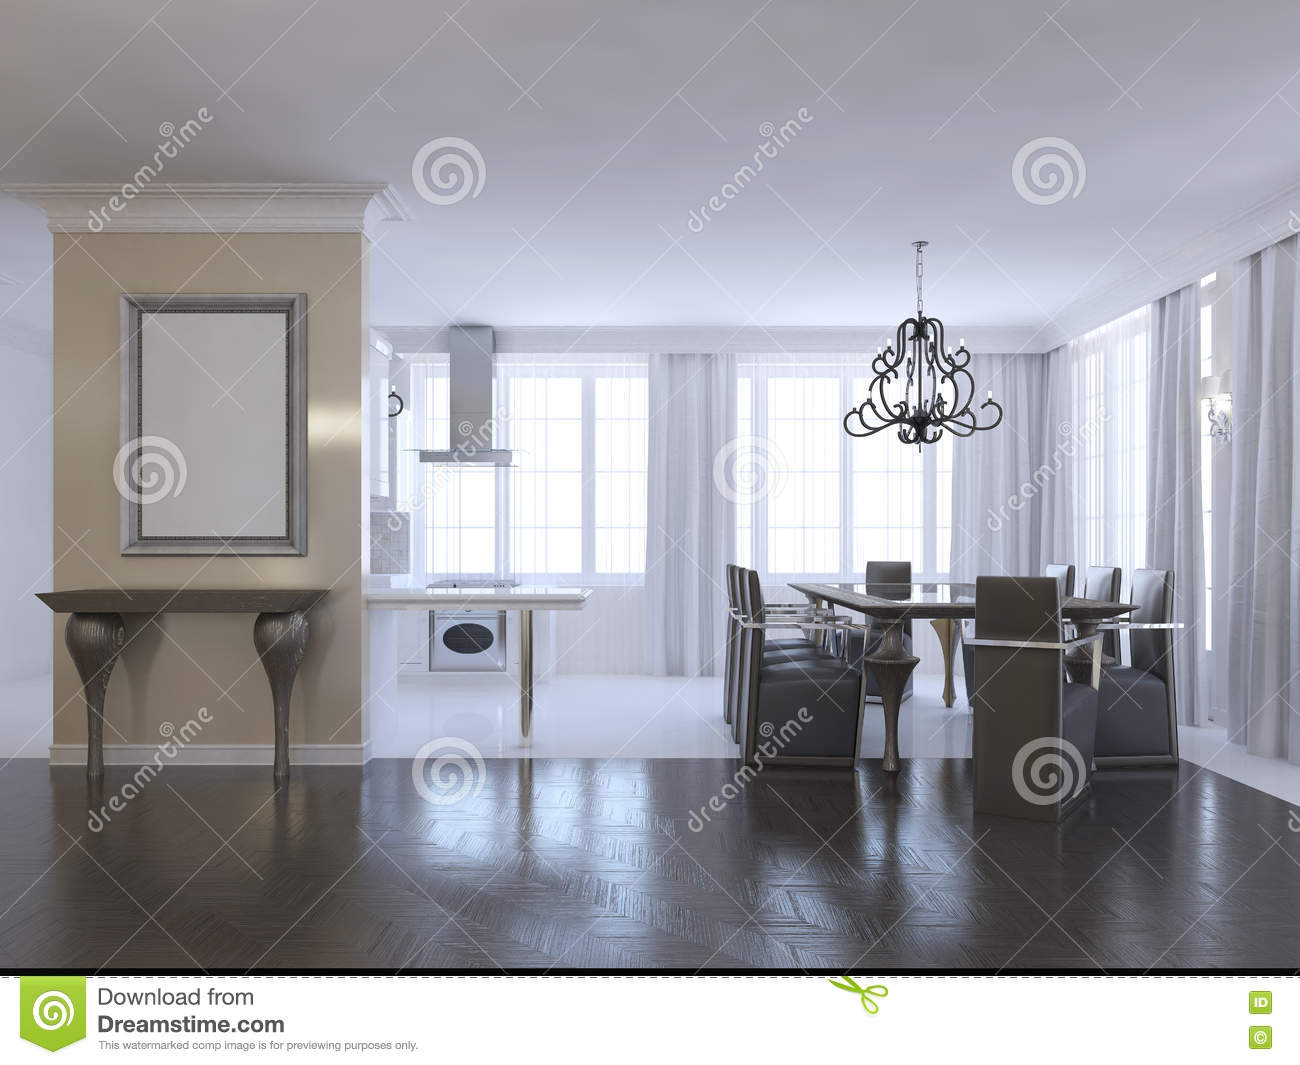 Design Art Deco Dining Room Decorated In A Minimalistic Style